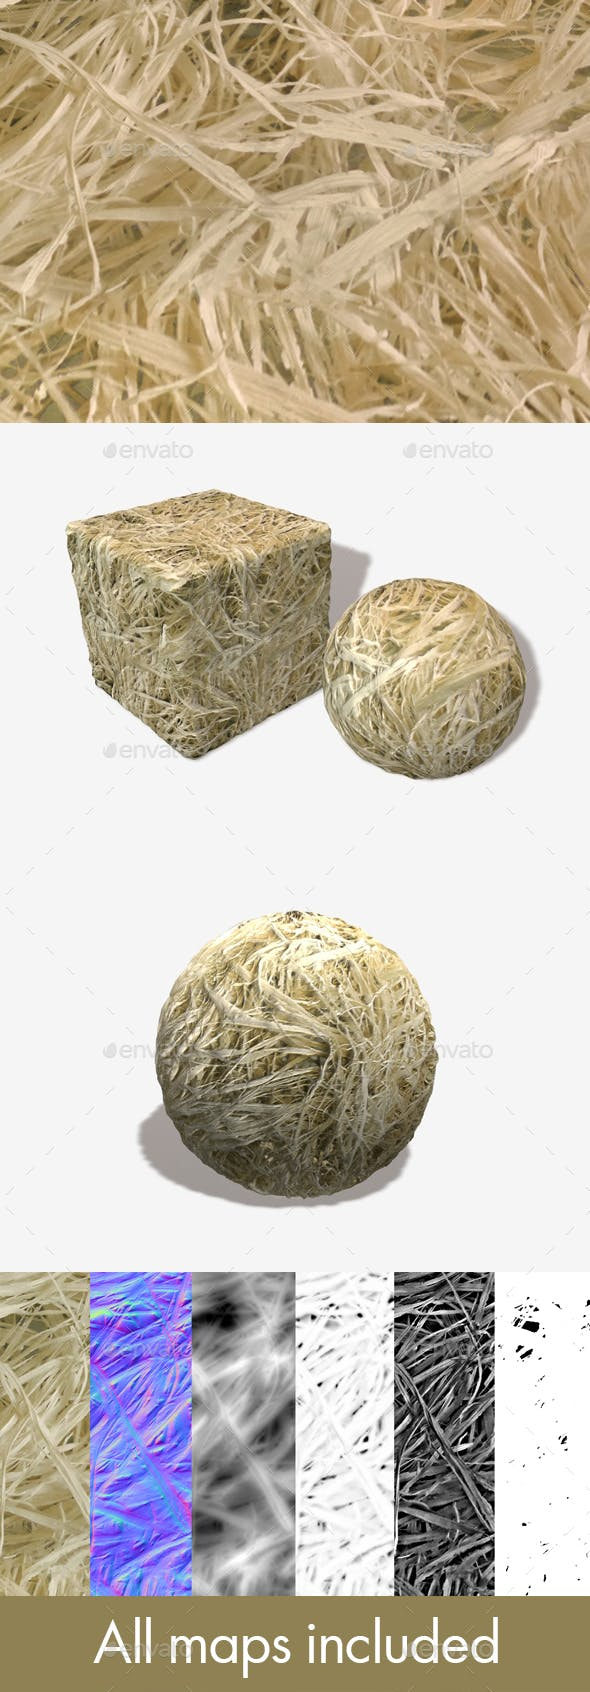 Dry Straw Seamless Texture - 3DOcean Item for Sale